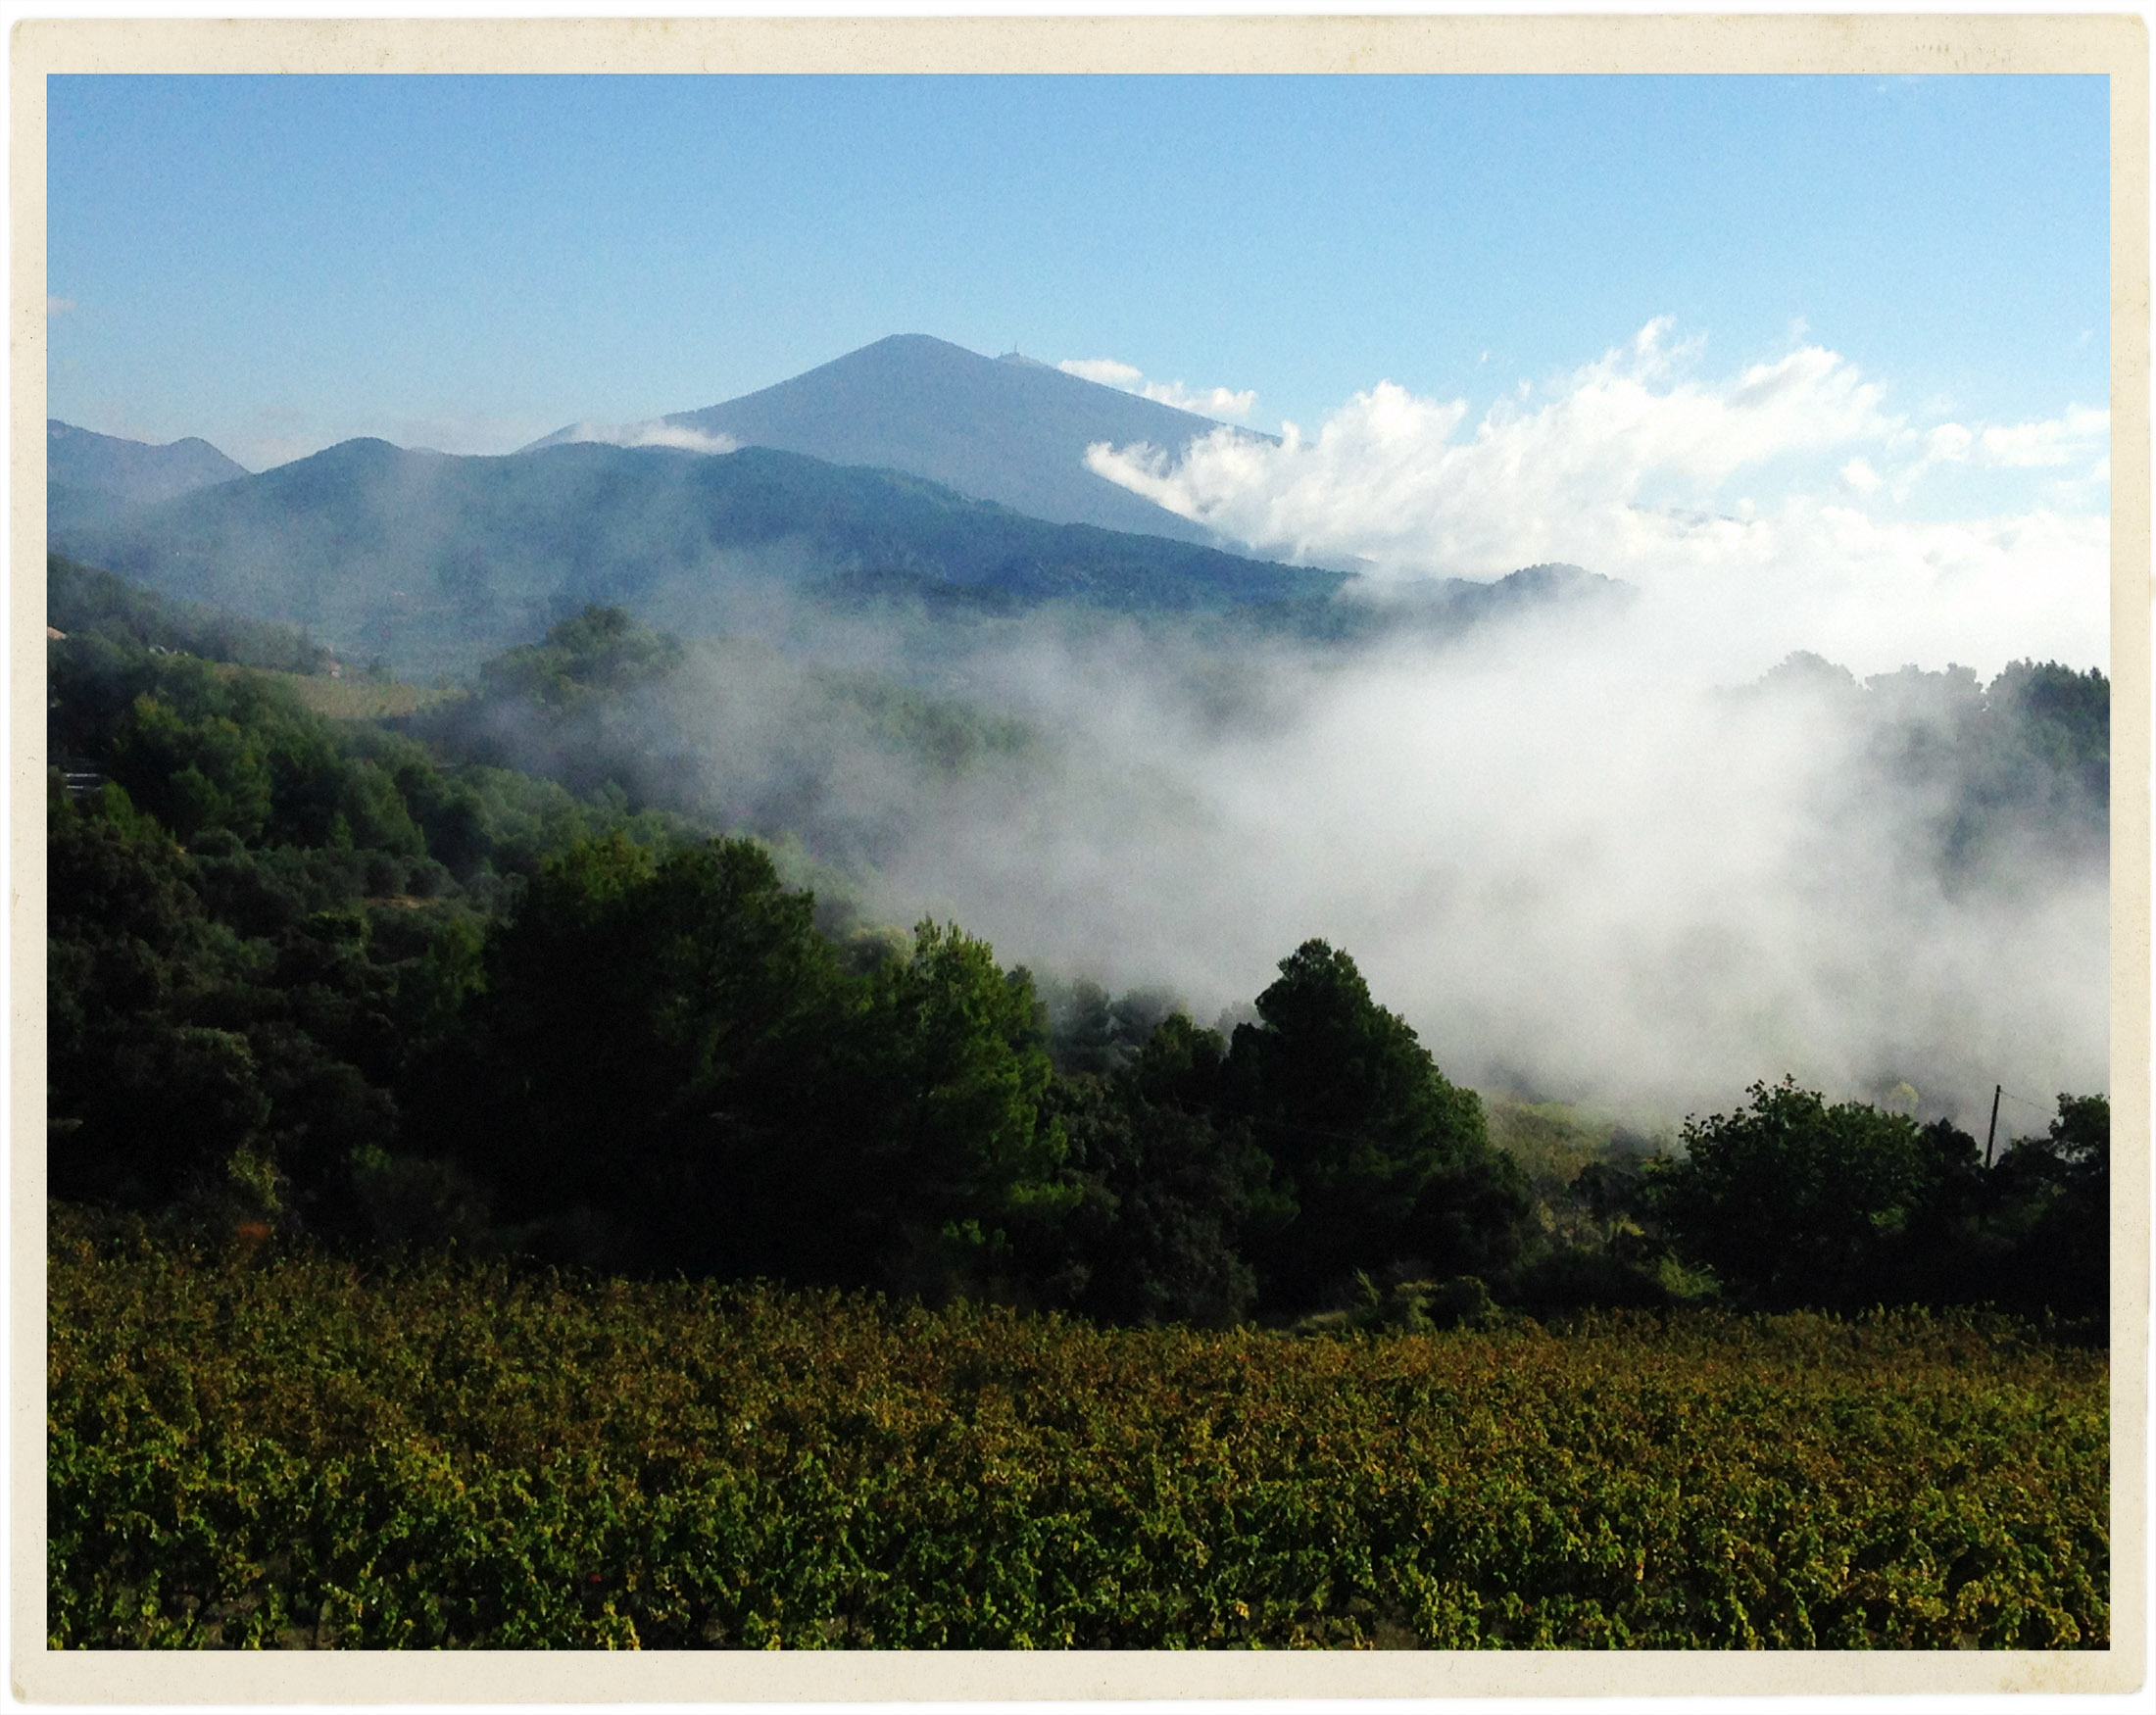 October morning mists on the Ventoux from the vineyards of Le Barroux.